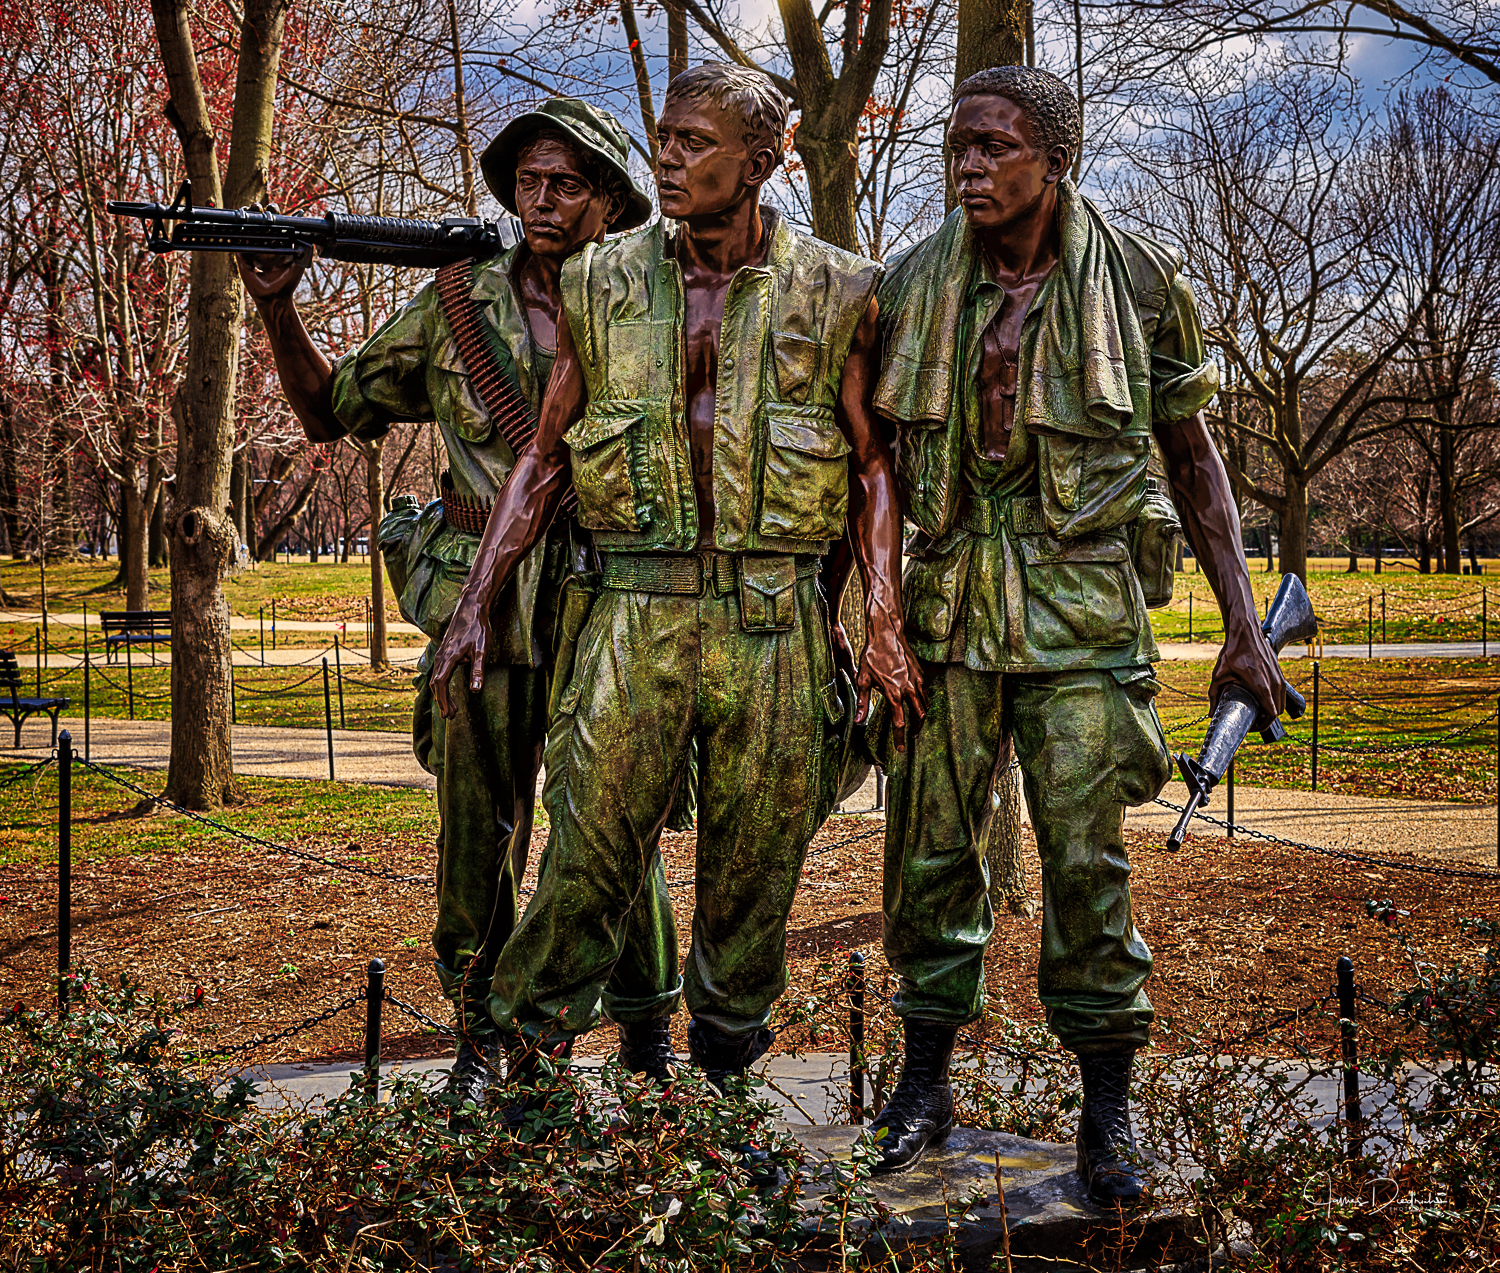 The Three Soldiers at the Vietnam Memorial